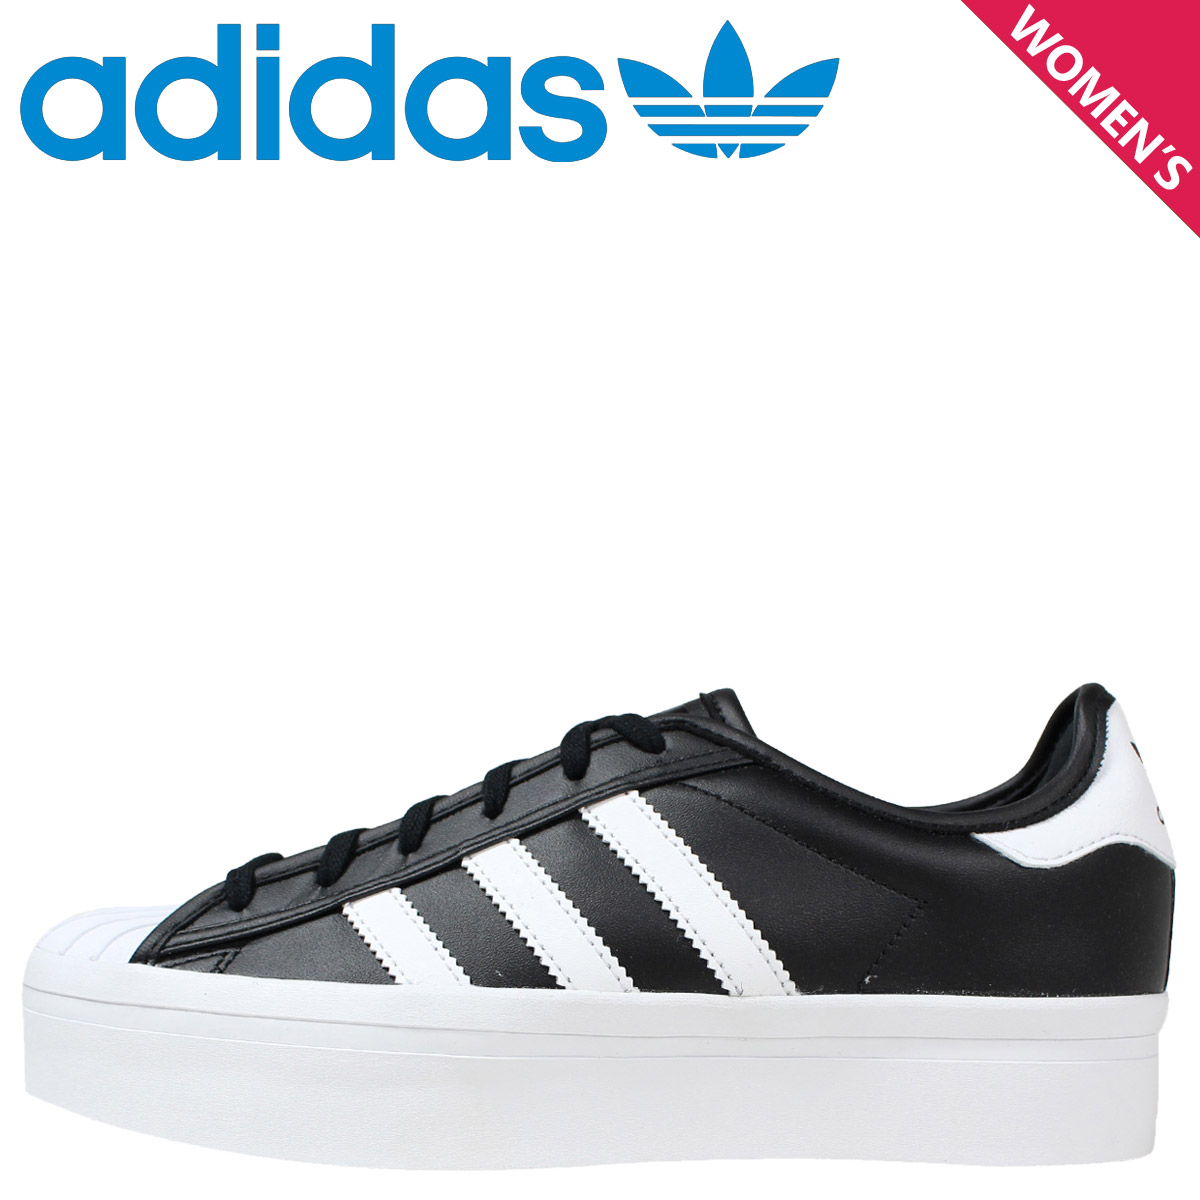 many fashionable official images details for adidas Originals Adidas originals superstar sneakers Lady's SUPERSTAR RIZE  W S75069 shoes black black